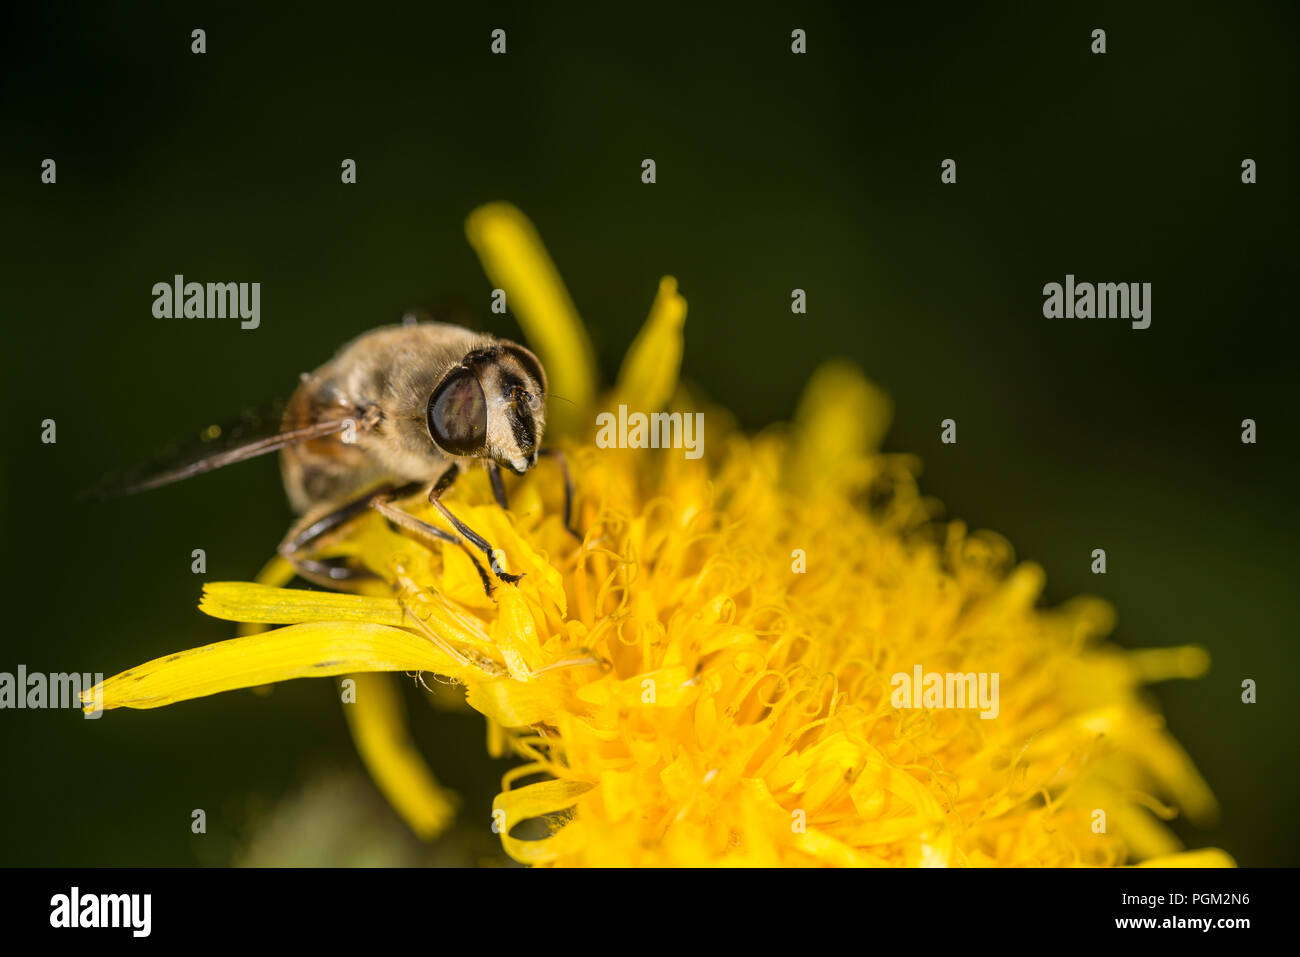 Honey bee gathering honey from a yellow flower - Stock Image